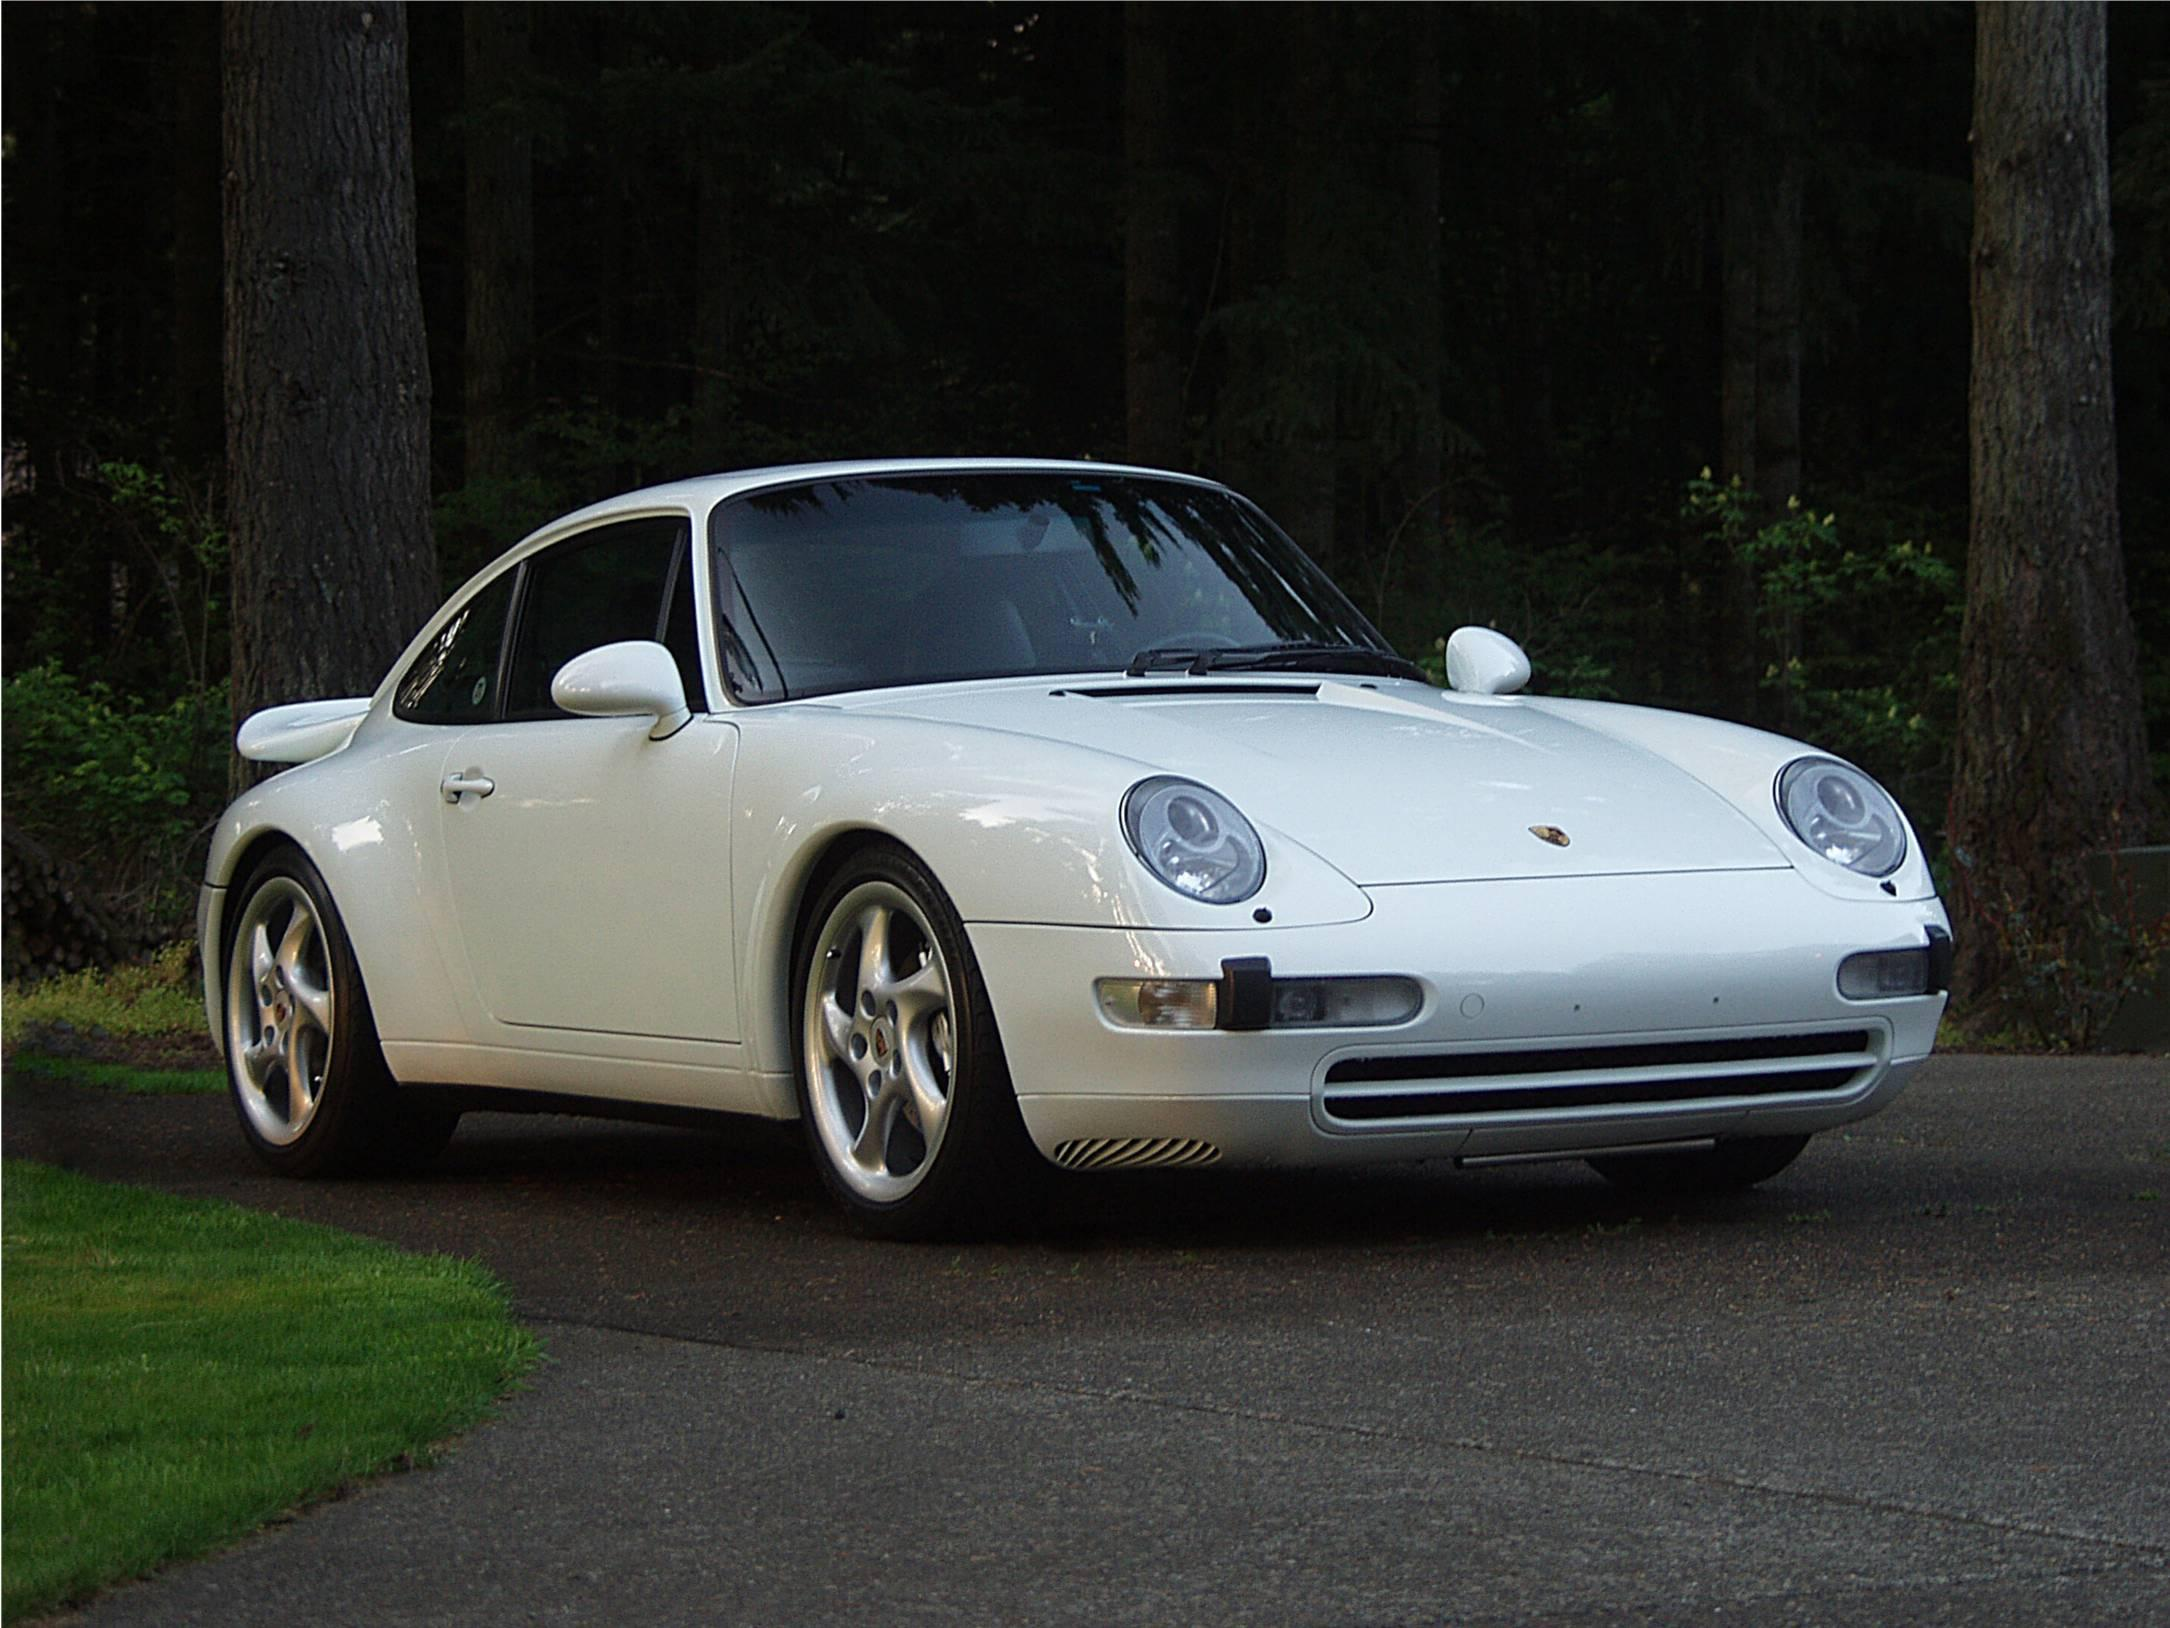 carrera4 96 1996 porsche 911 specs photos modification info at cardomain. Black Bedroom Furniture Sets. Home Design Ideas